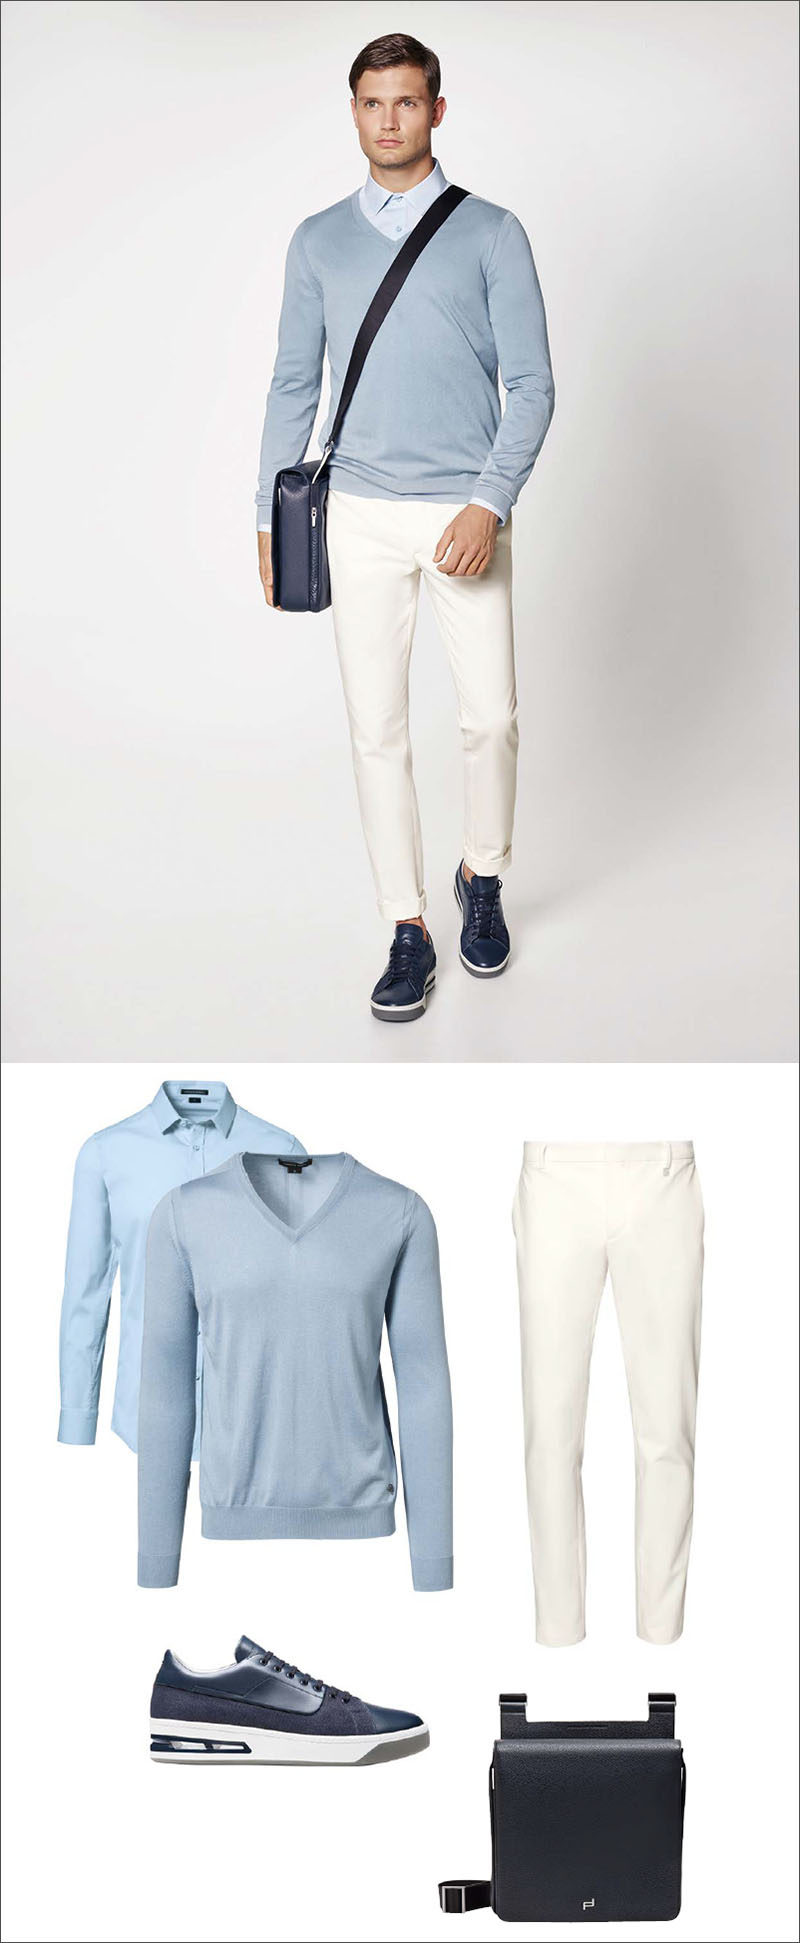 Men's Fashion Ideas - 17 Men's Outfits From Porsche Design's 2017 Spring/Summer Collection | Switch out the blazer for a navy leather shoulder bag and you're left with a simple but classy outfit made up of a blue collared shirt, a blue v-neck, white pants, and navy sneakers.